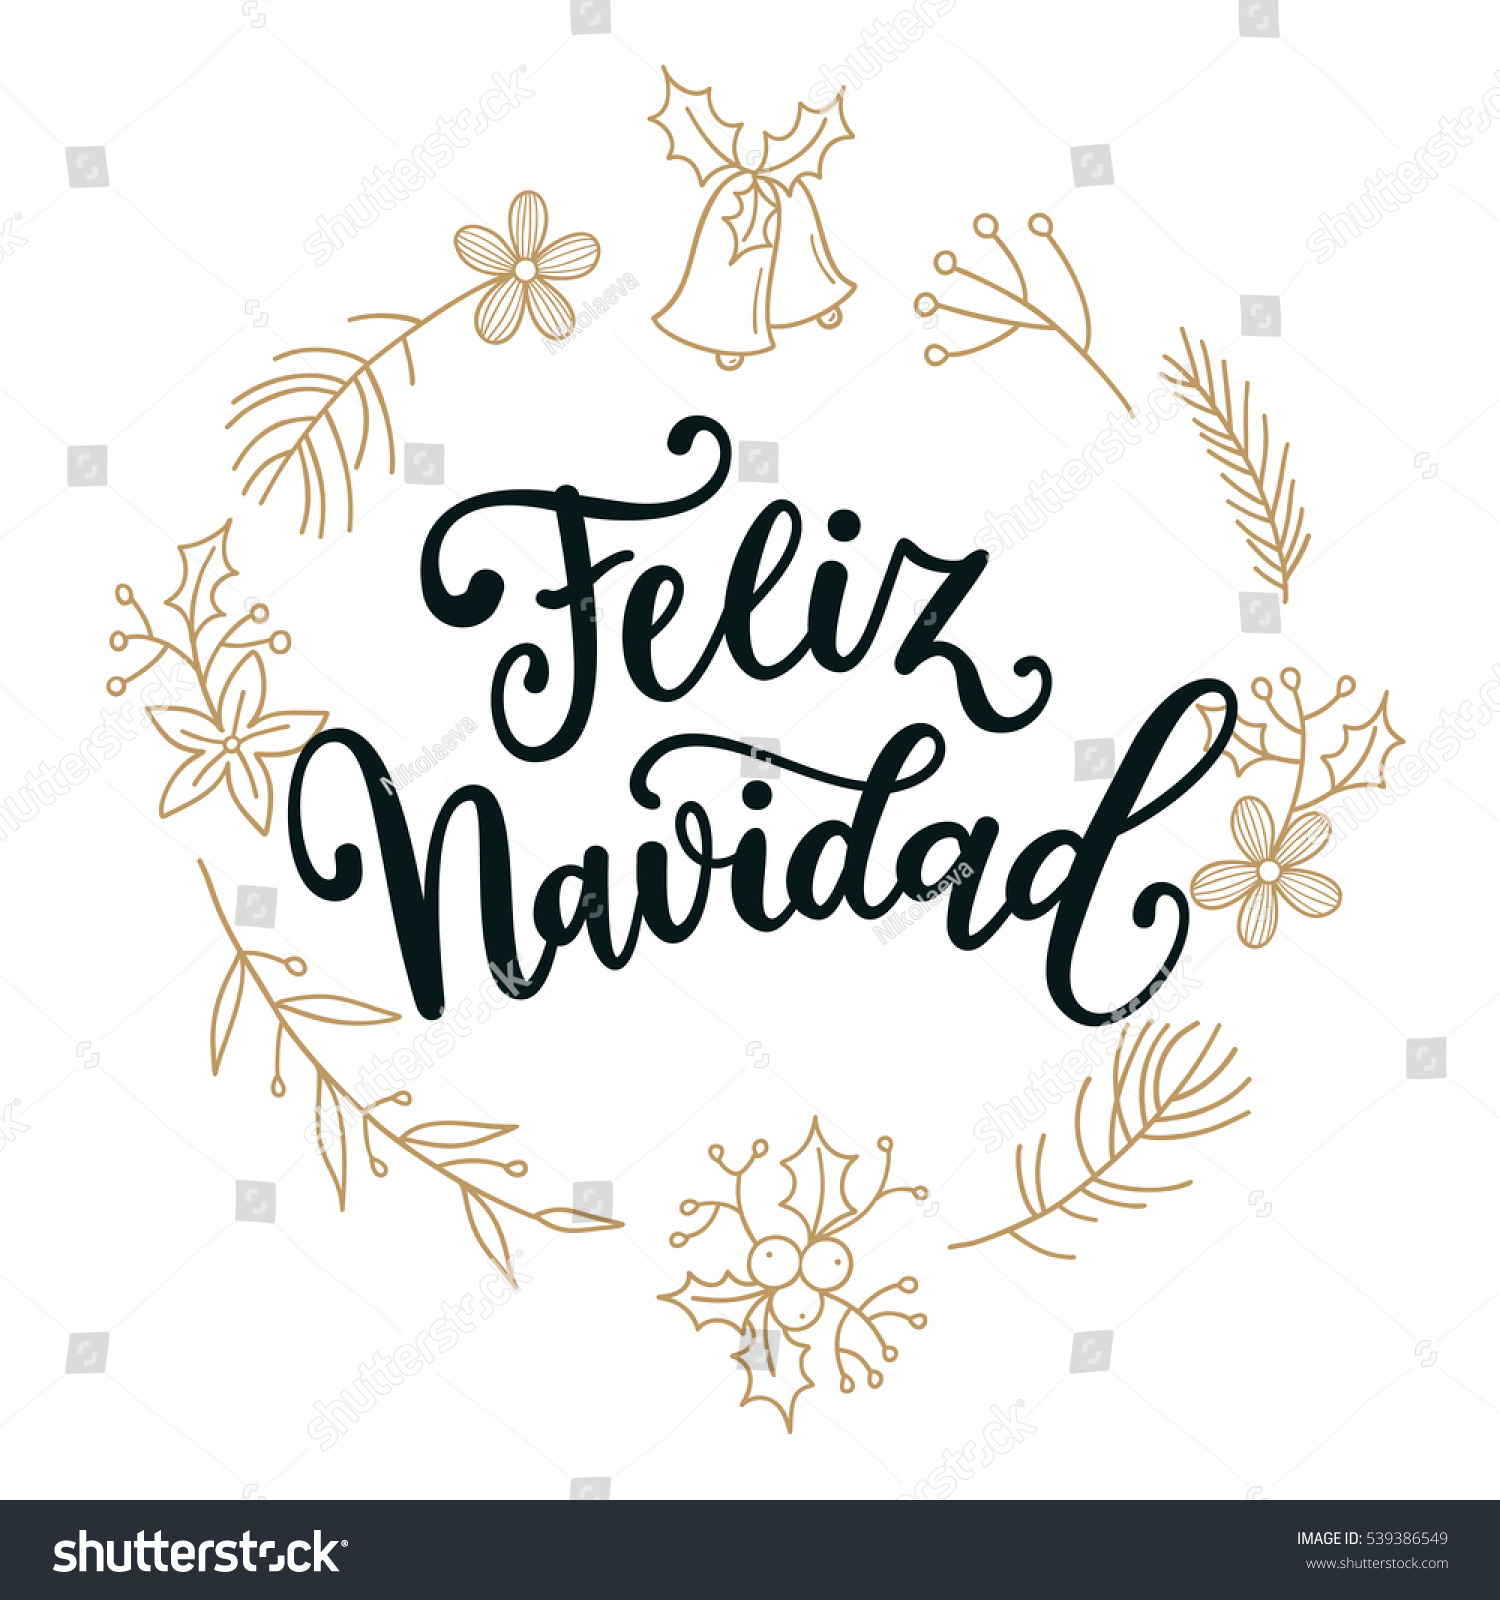 Merry En: Feliz Navidad Holidays Greeting Card Spanish Vectores En